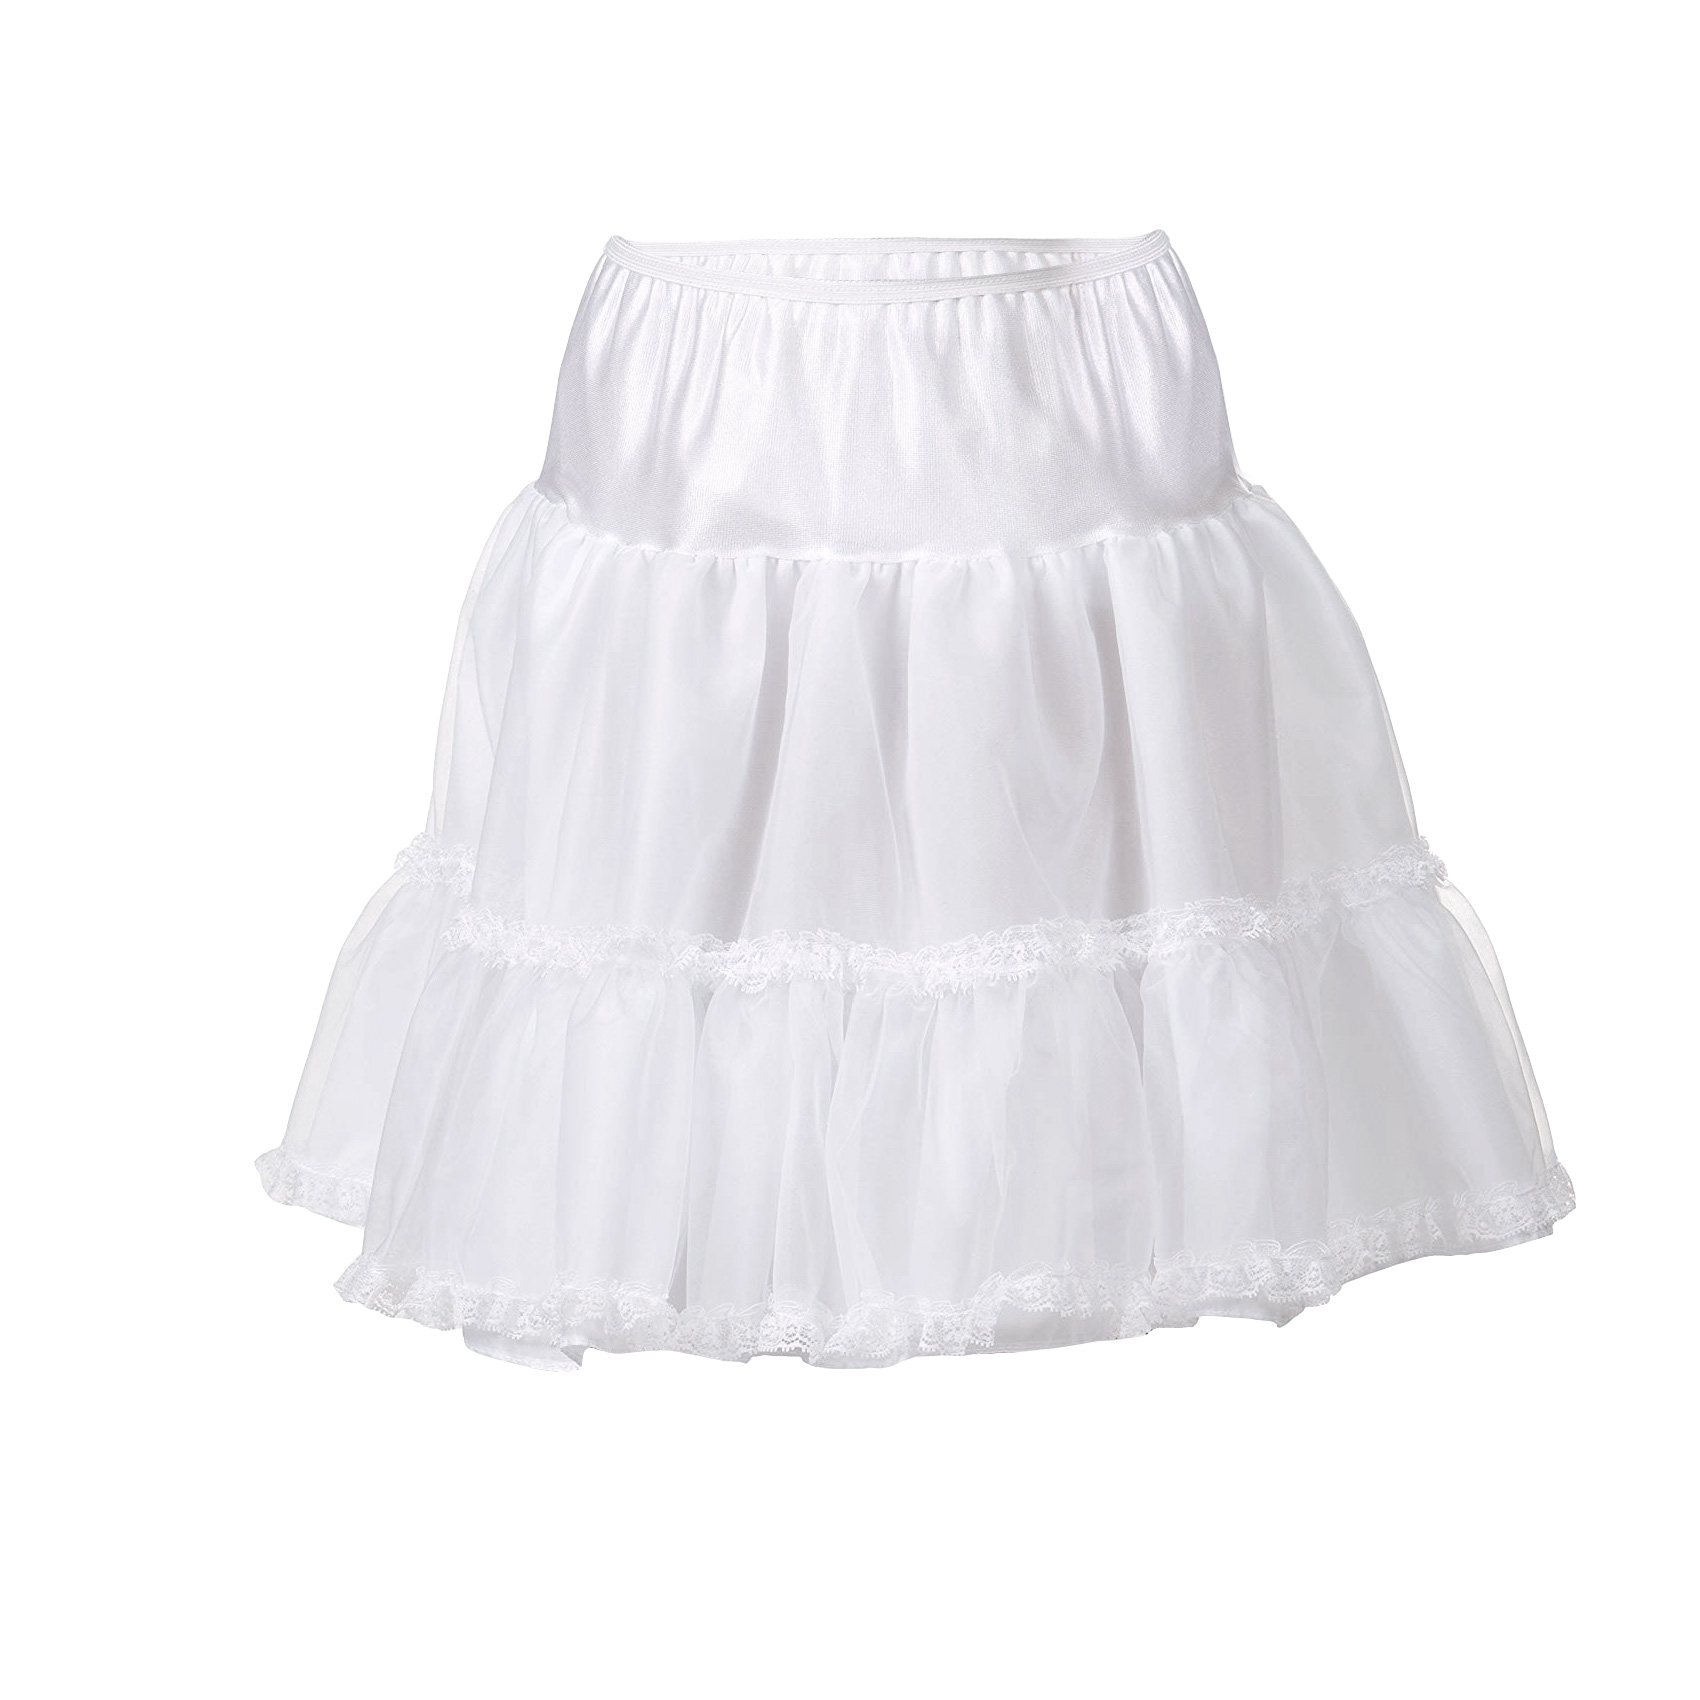 I.C 2T 6x Collections Little Girls Lace Embellished White Bouffant Half Slip